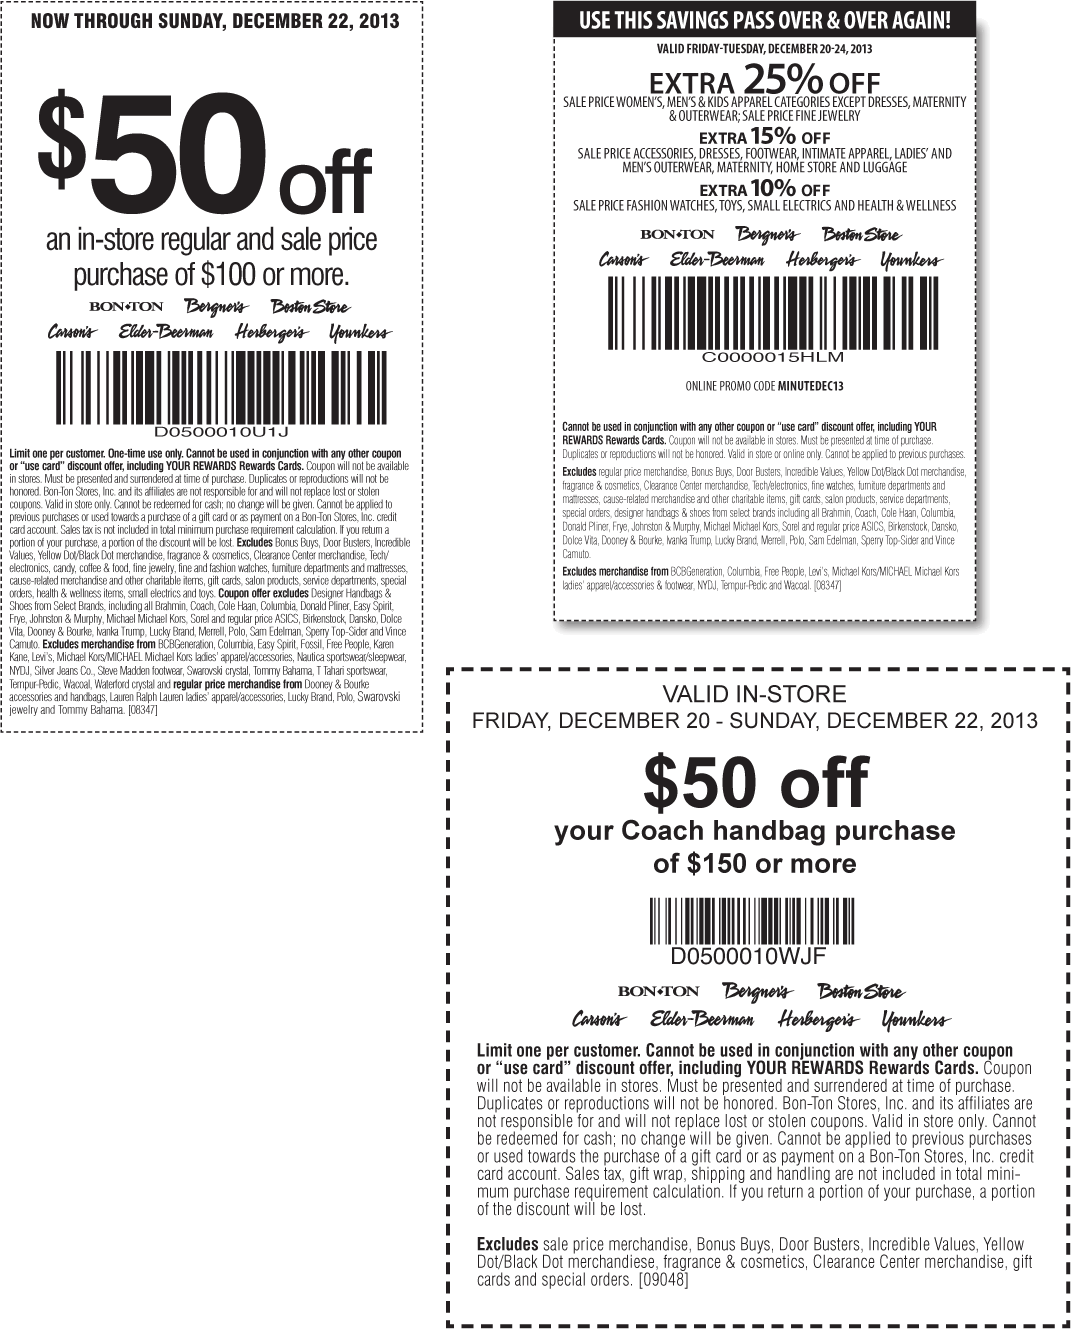 carsons coupon 50 off 100